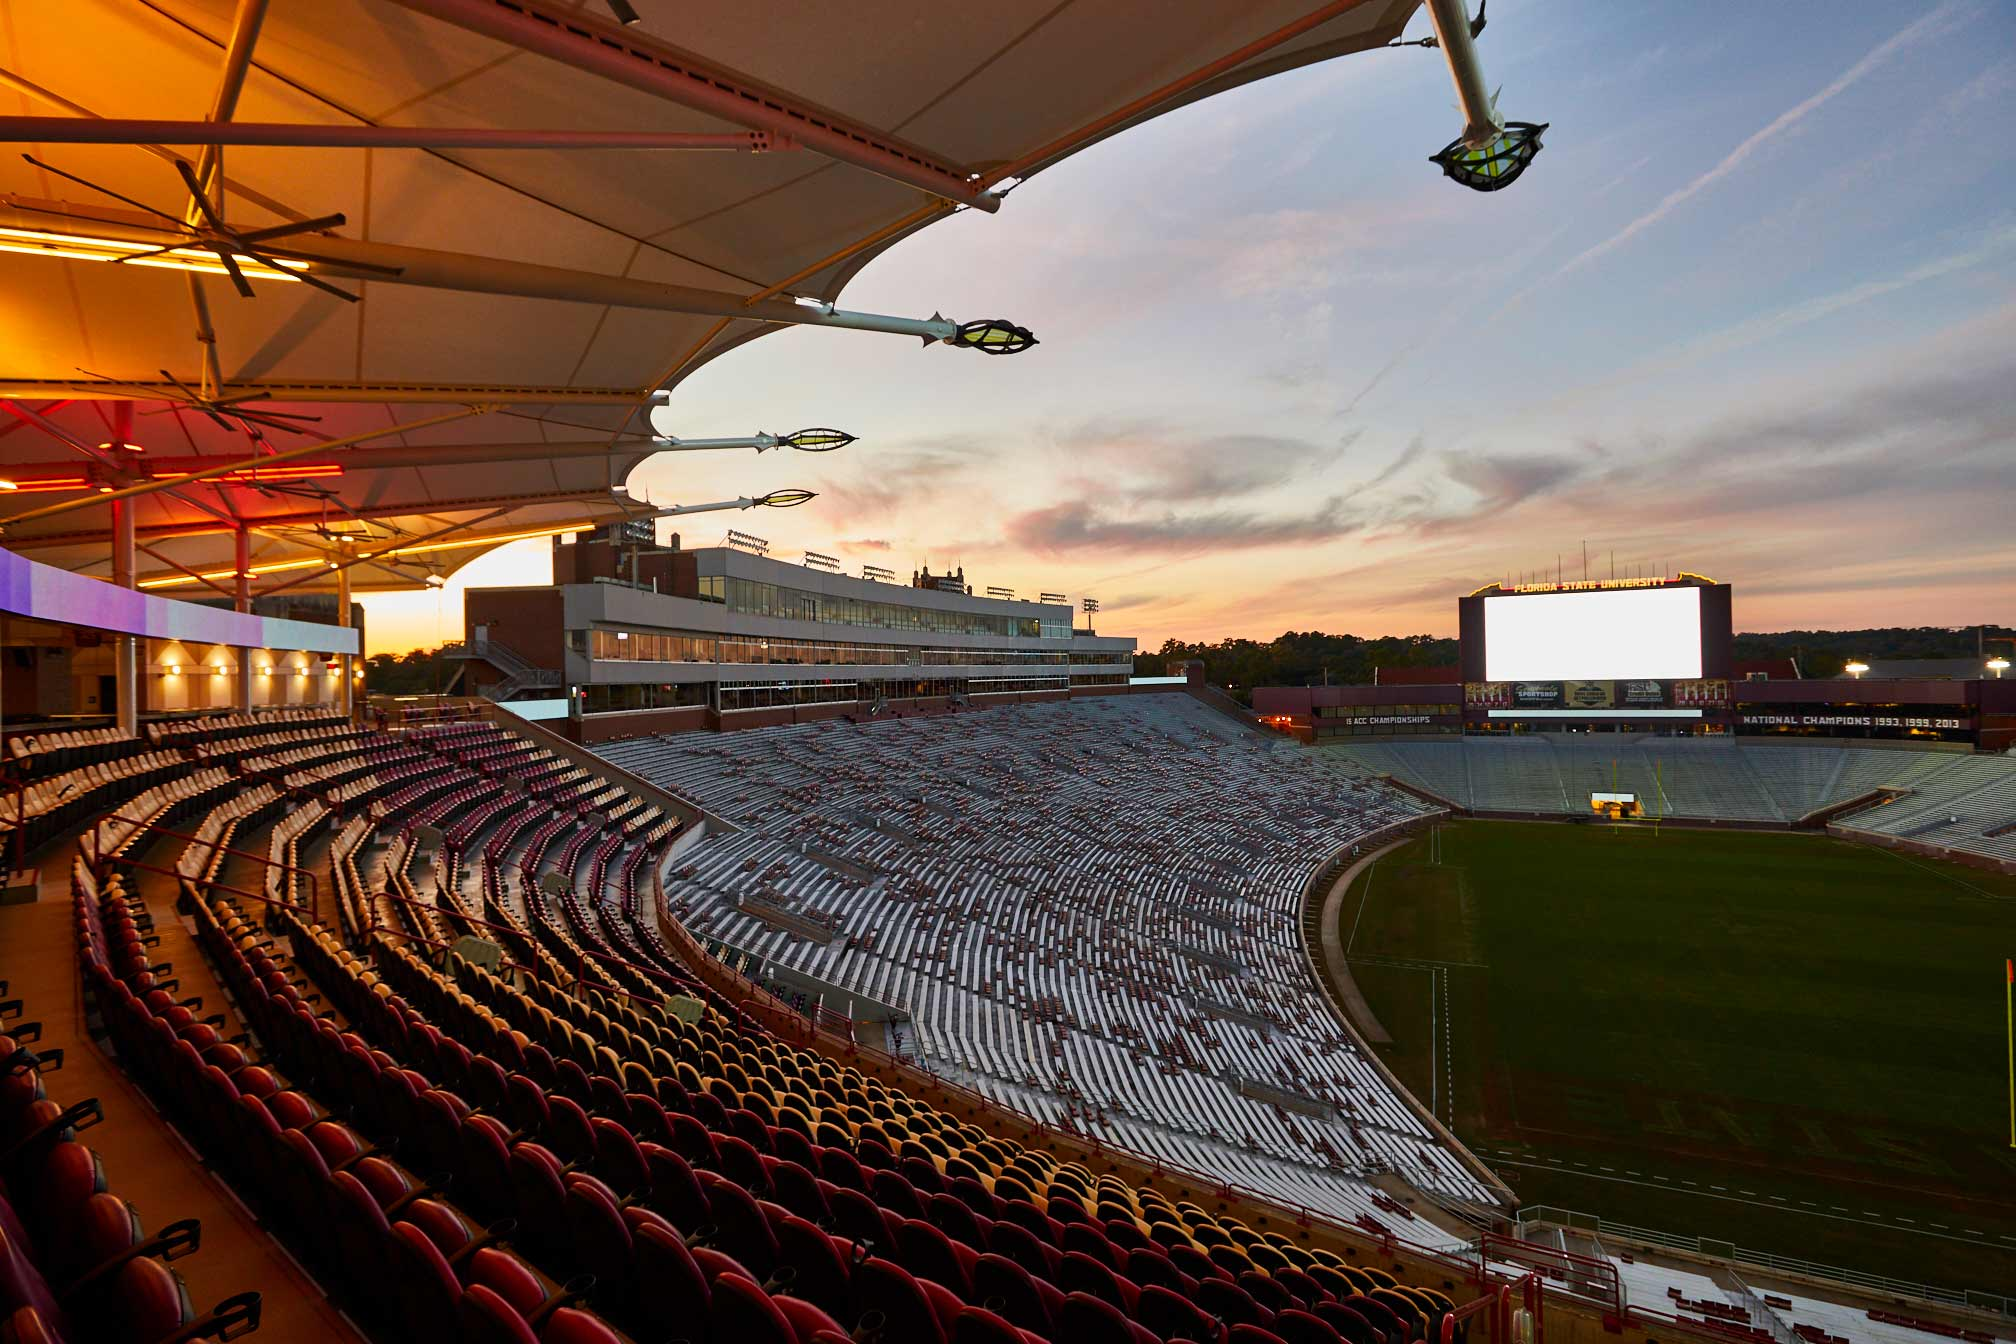 FSU_Stadium-in_009